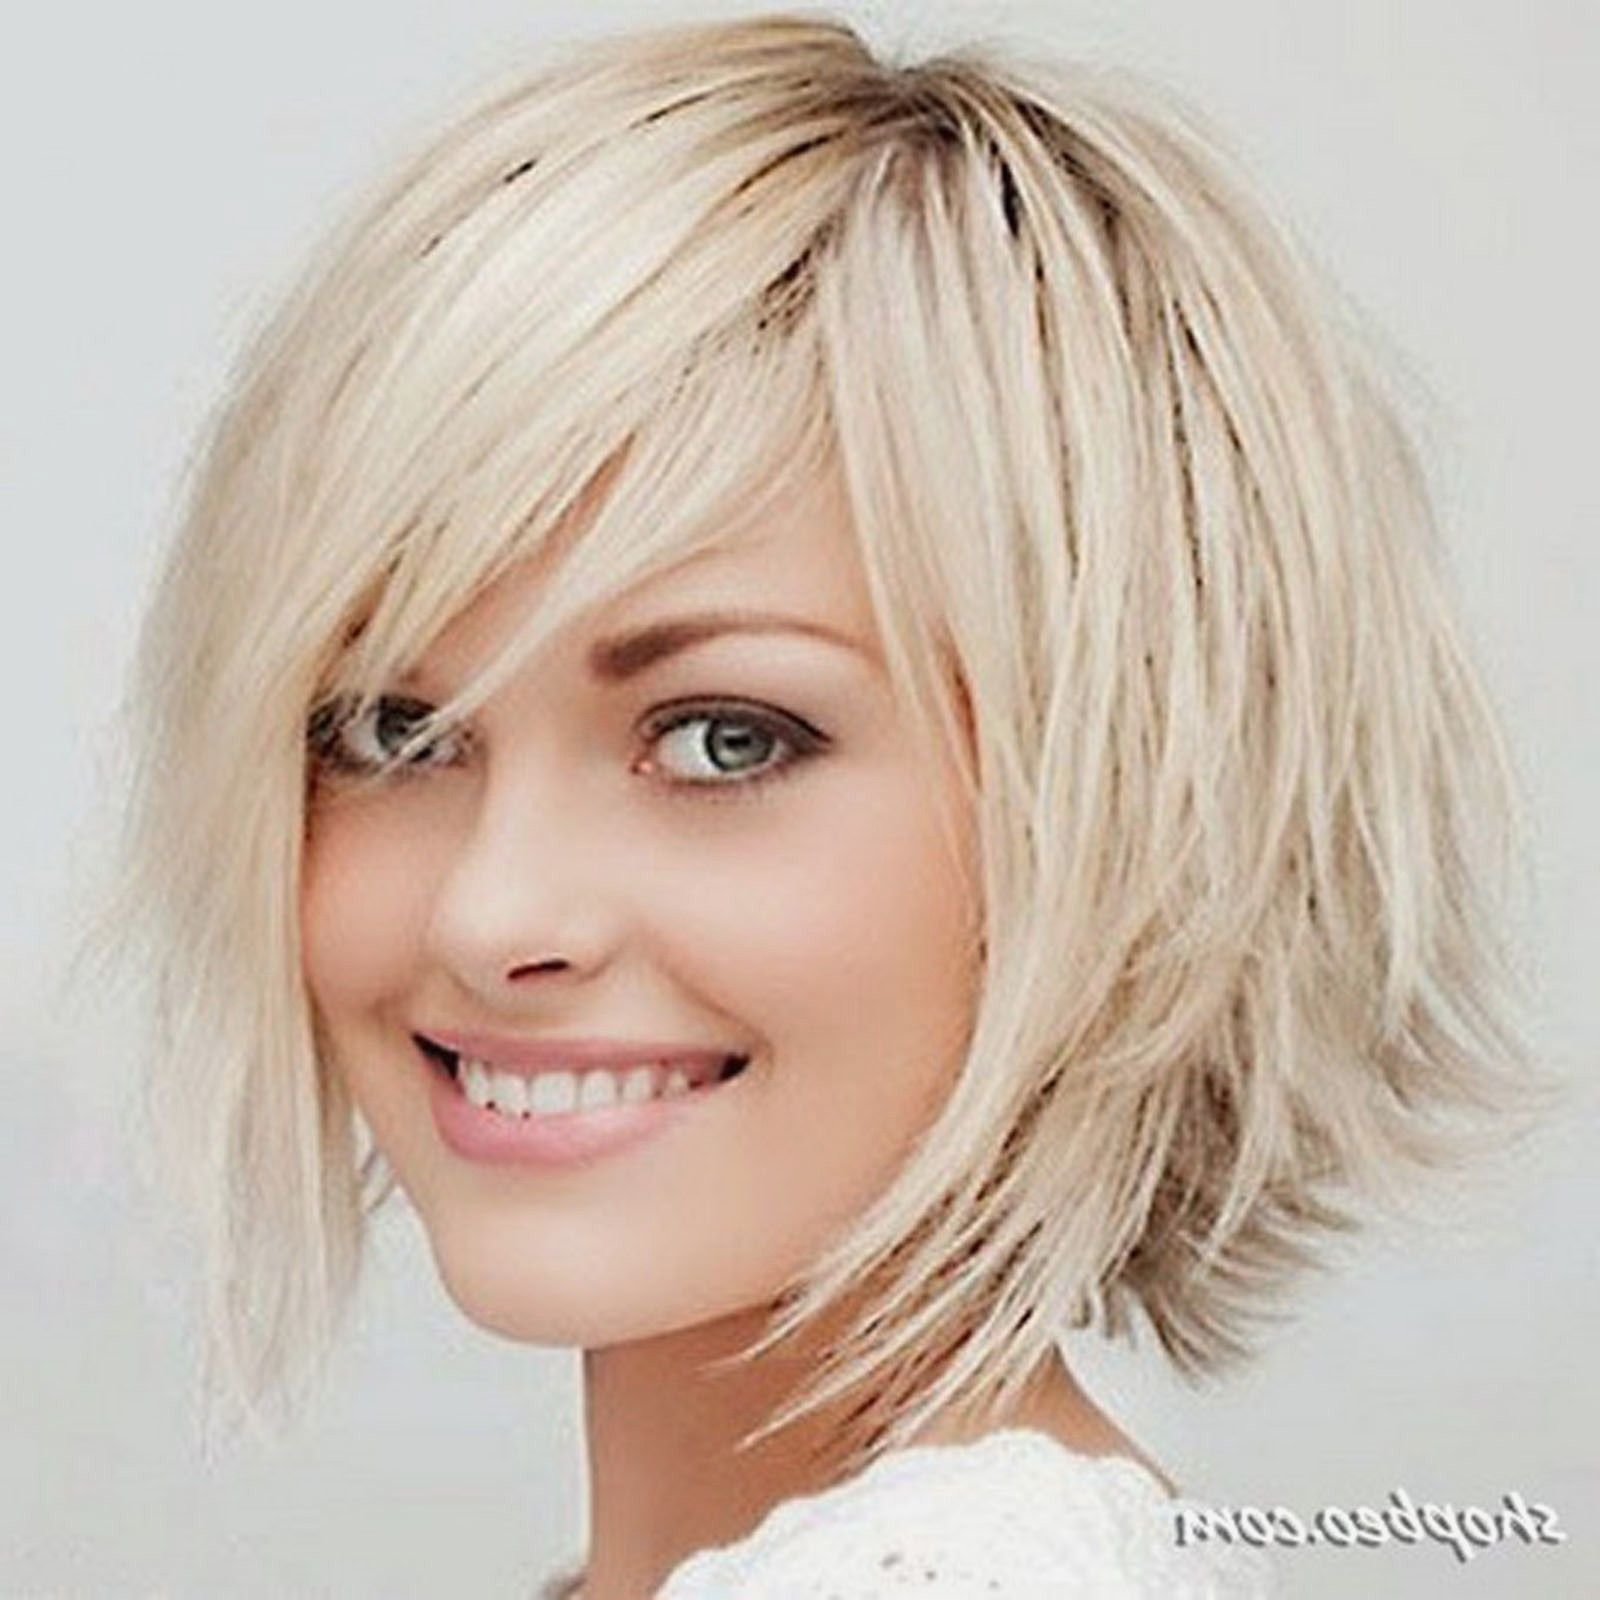 Low Maintenance Short Hairstyles Archives • Detroitairportshuttles Throughout Easy Maintenance Short Hairstyles (View 17 of 25)